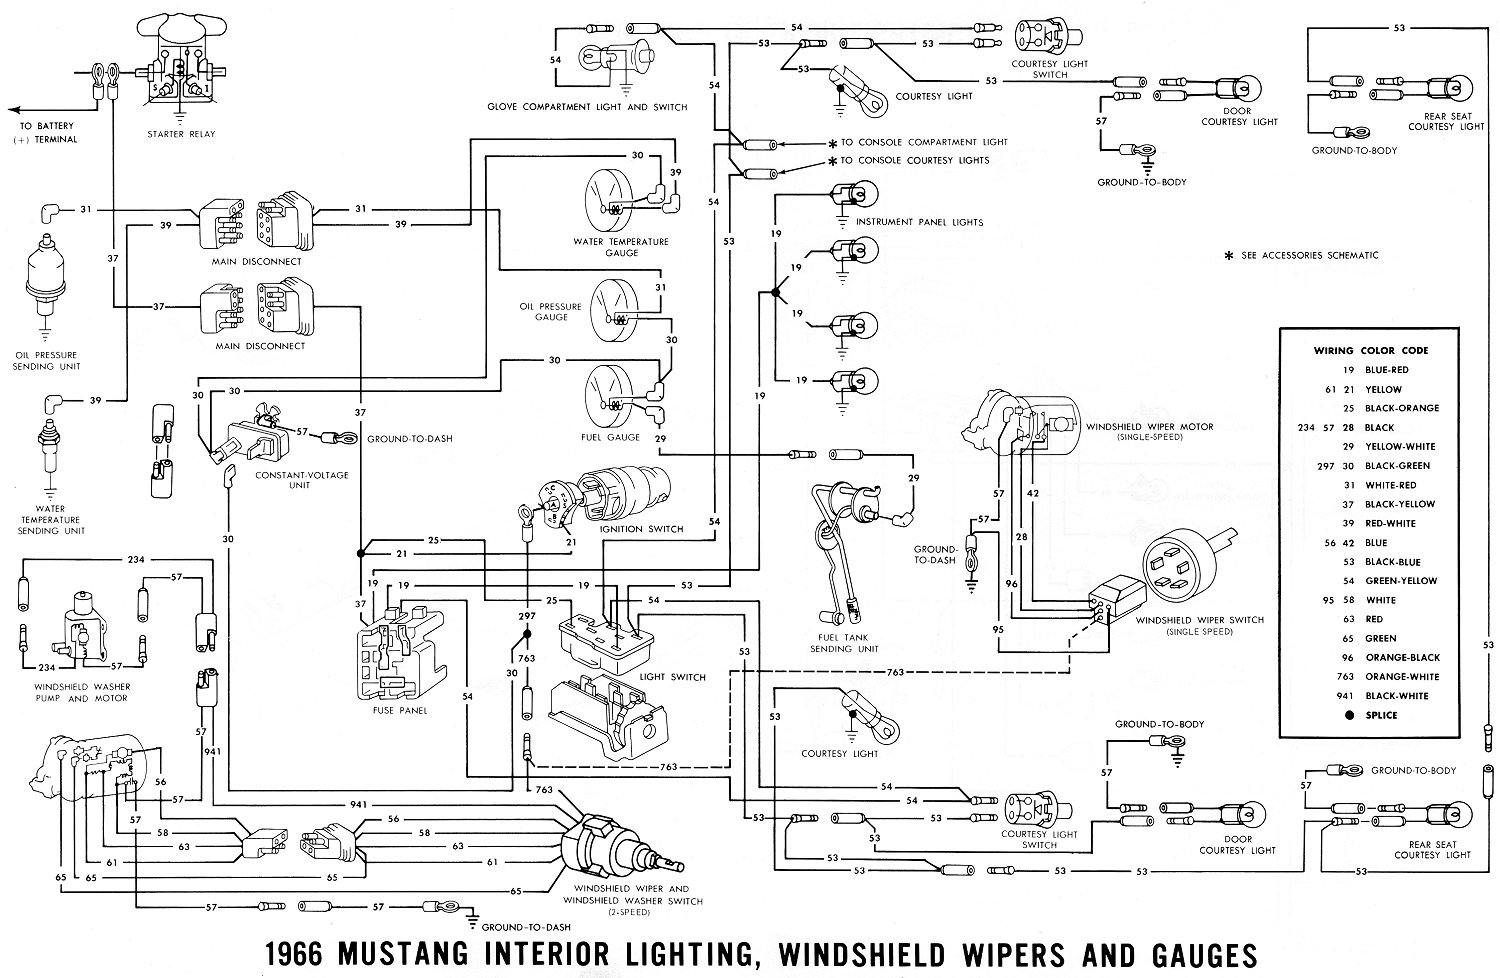 1966 Mustang Wiring Diagrams Average Joe Restoration Coolant Temp Sensor Diagram Schematic